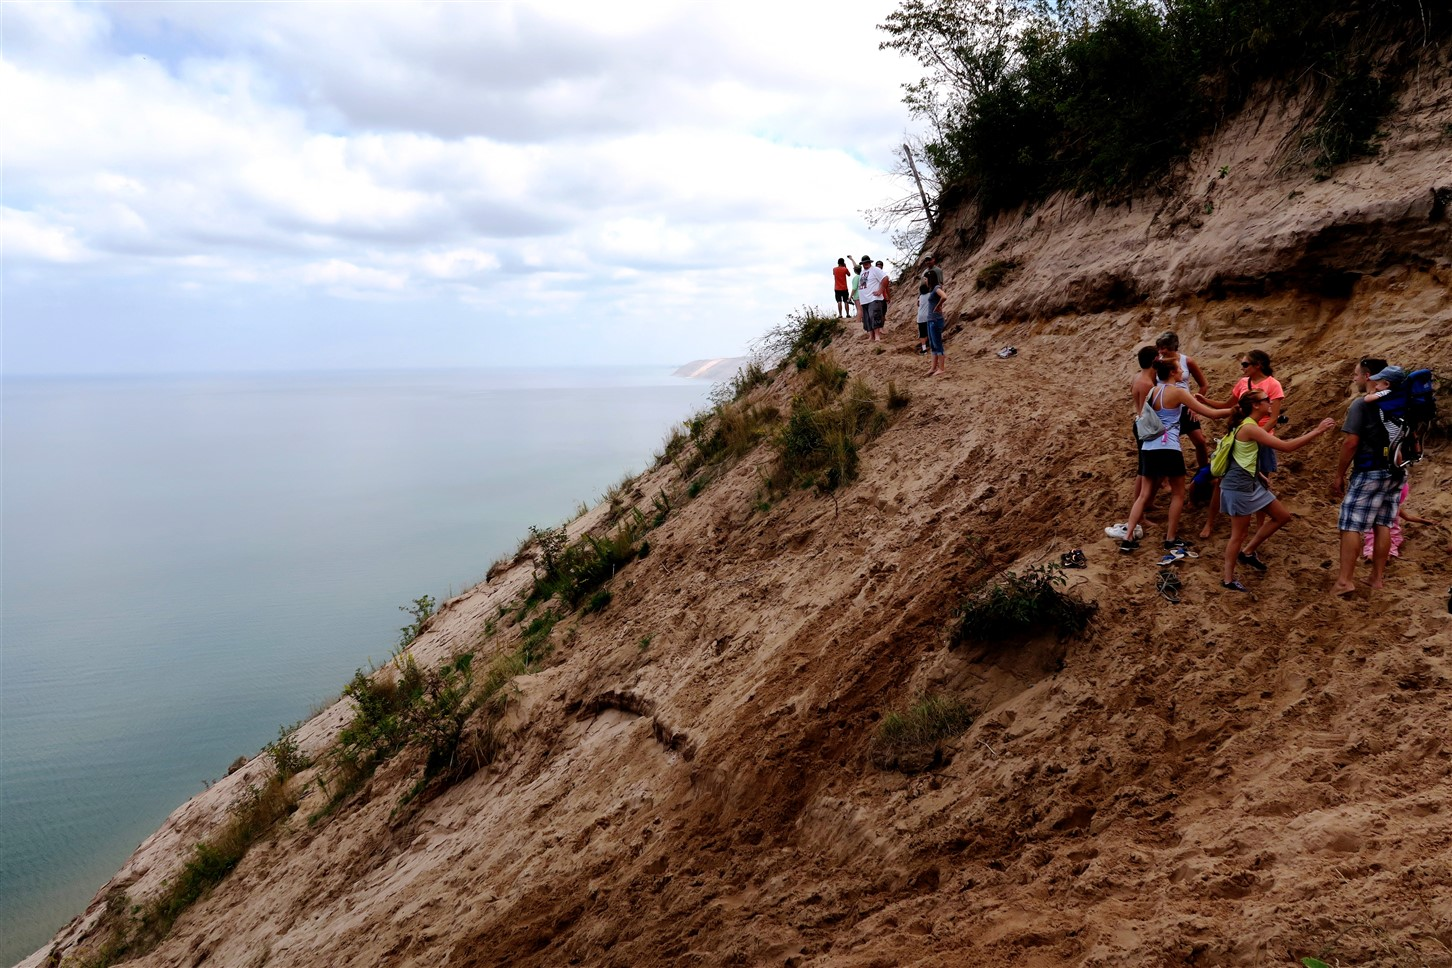 2015 09 05 75 Pictured Rocks National Park MI.jpg